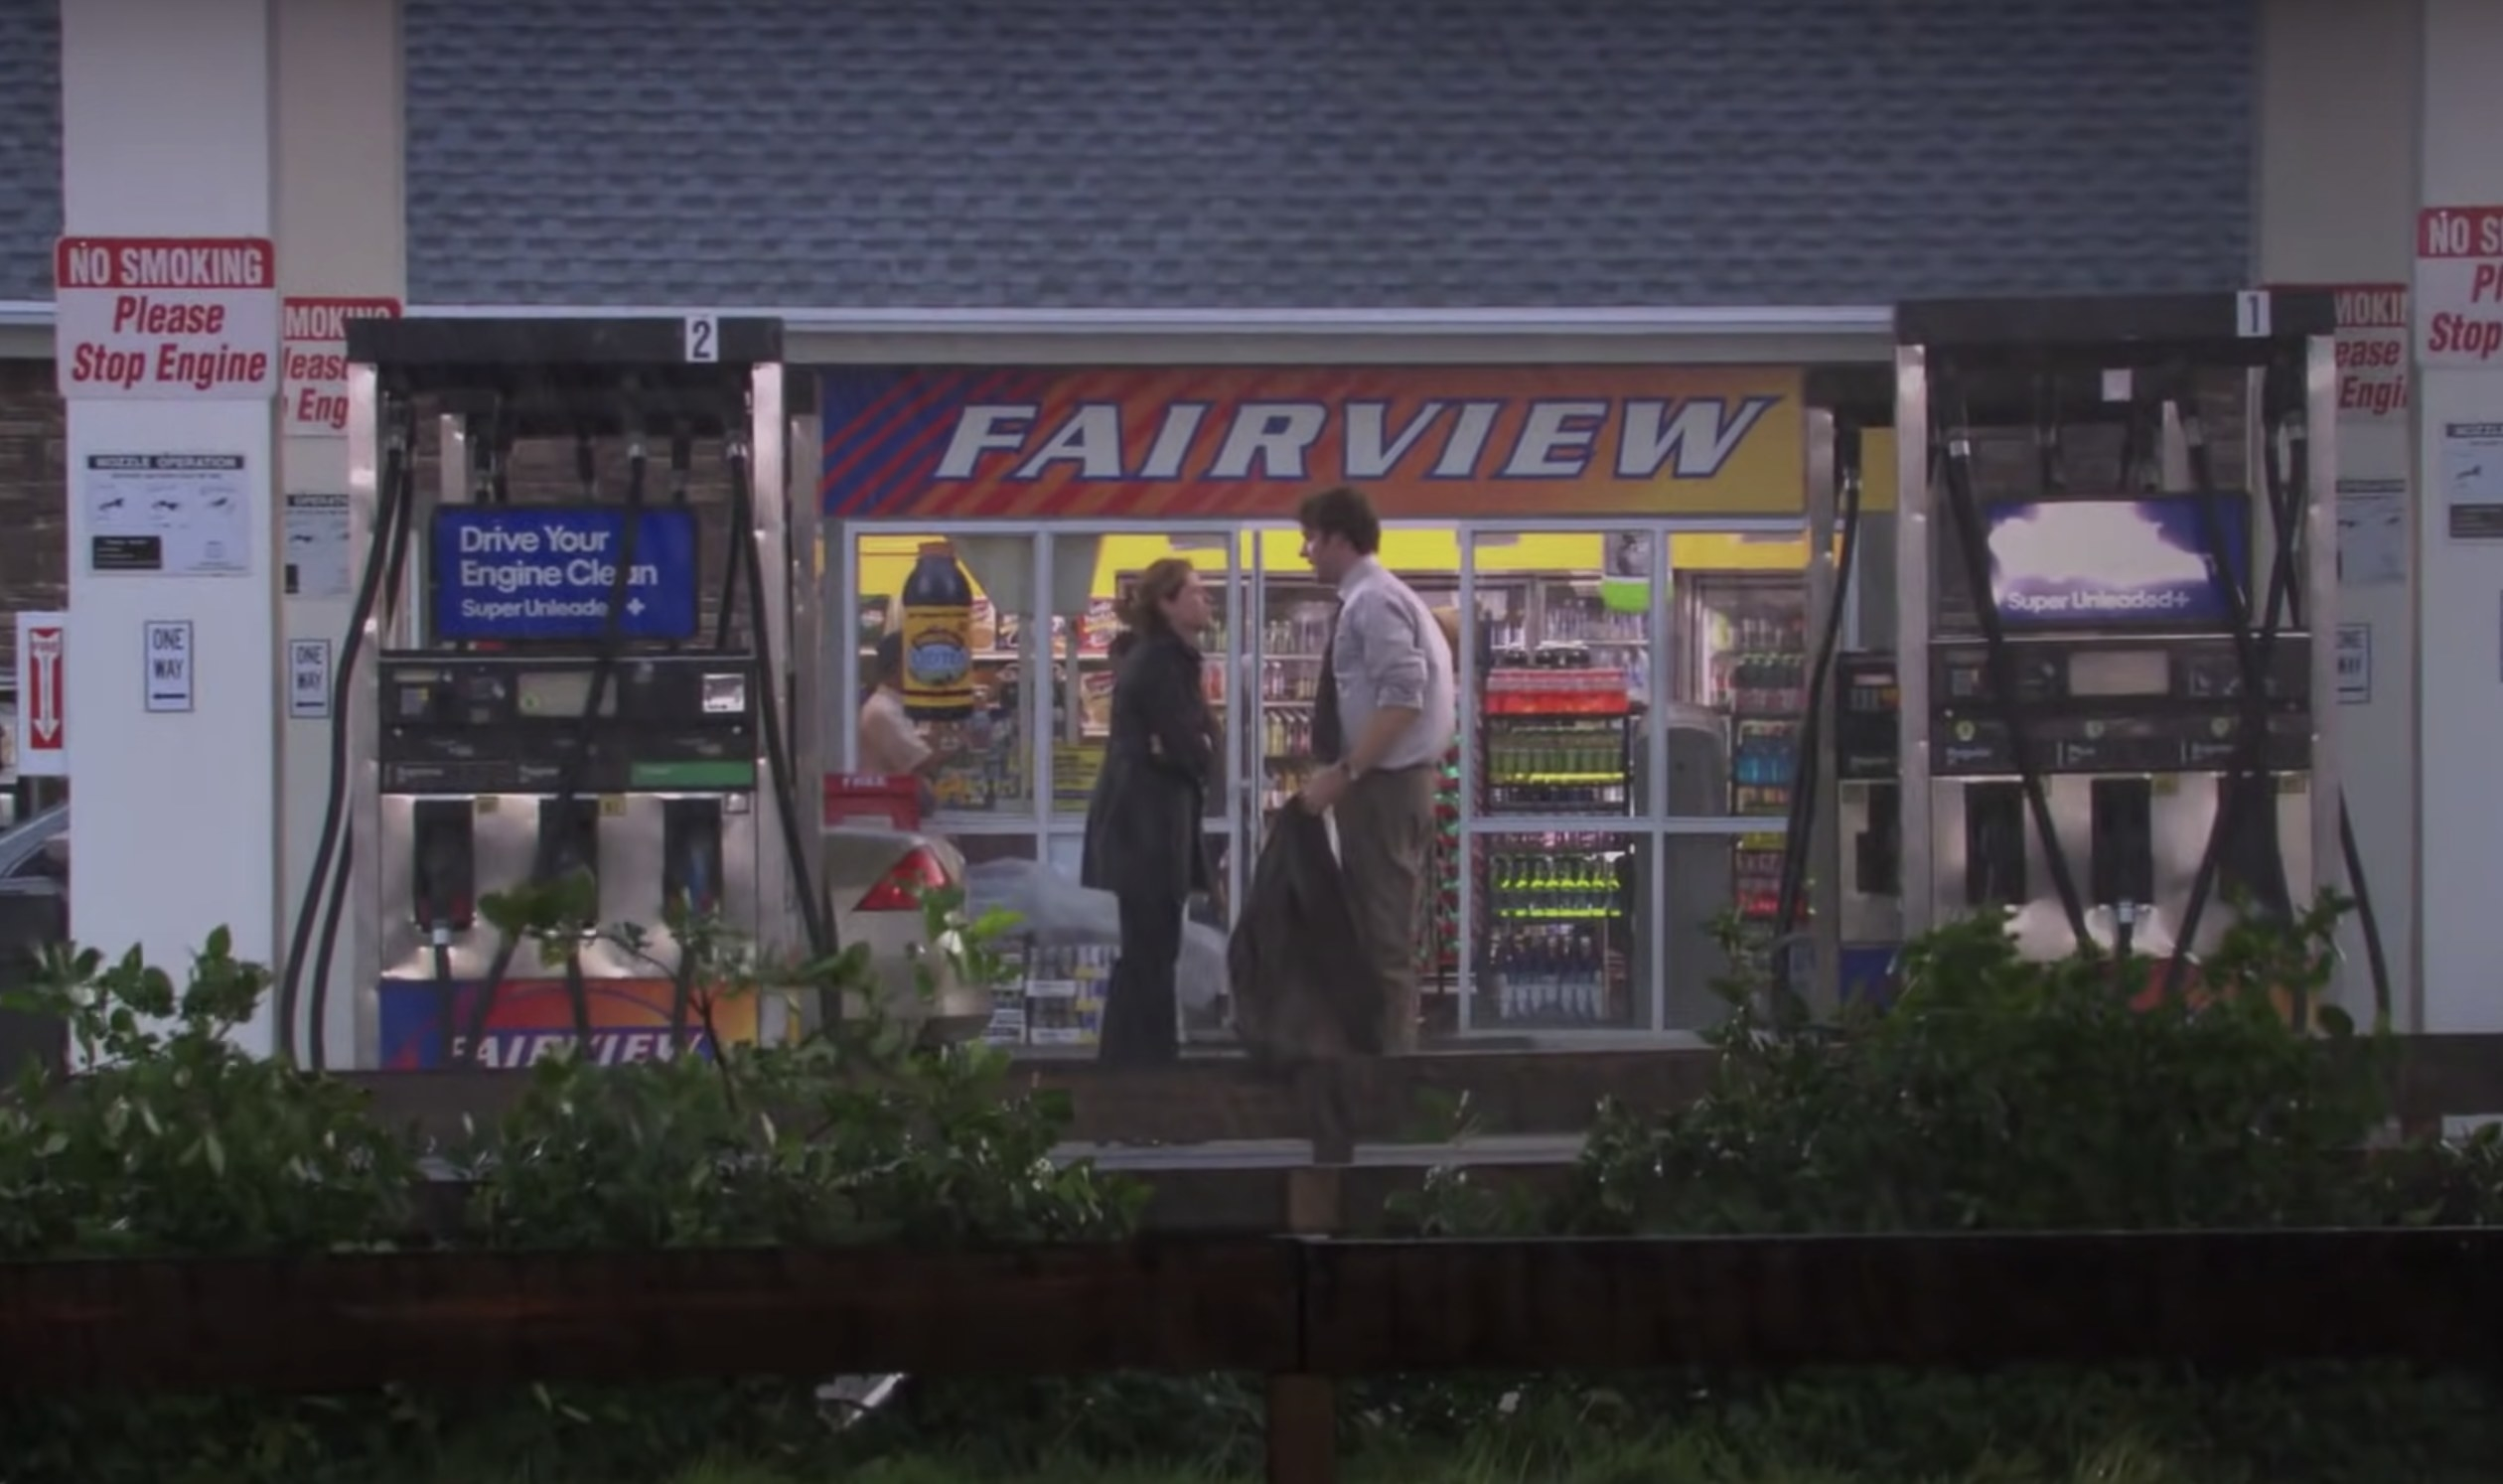 Jim and Pam look at each other outside the gas station